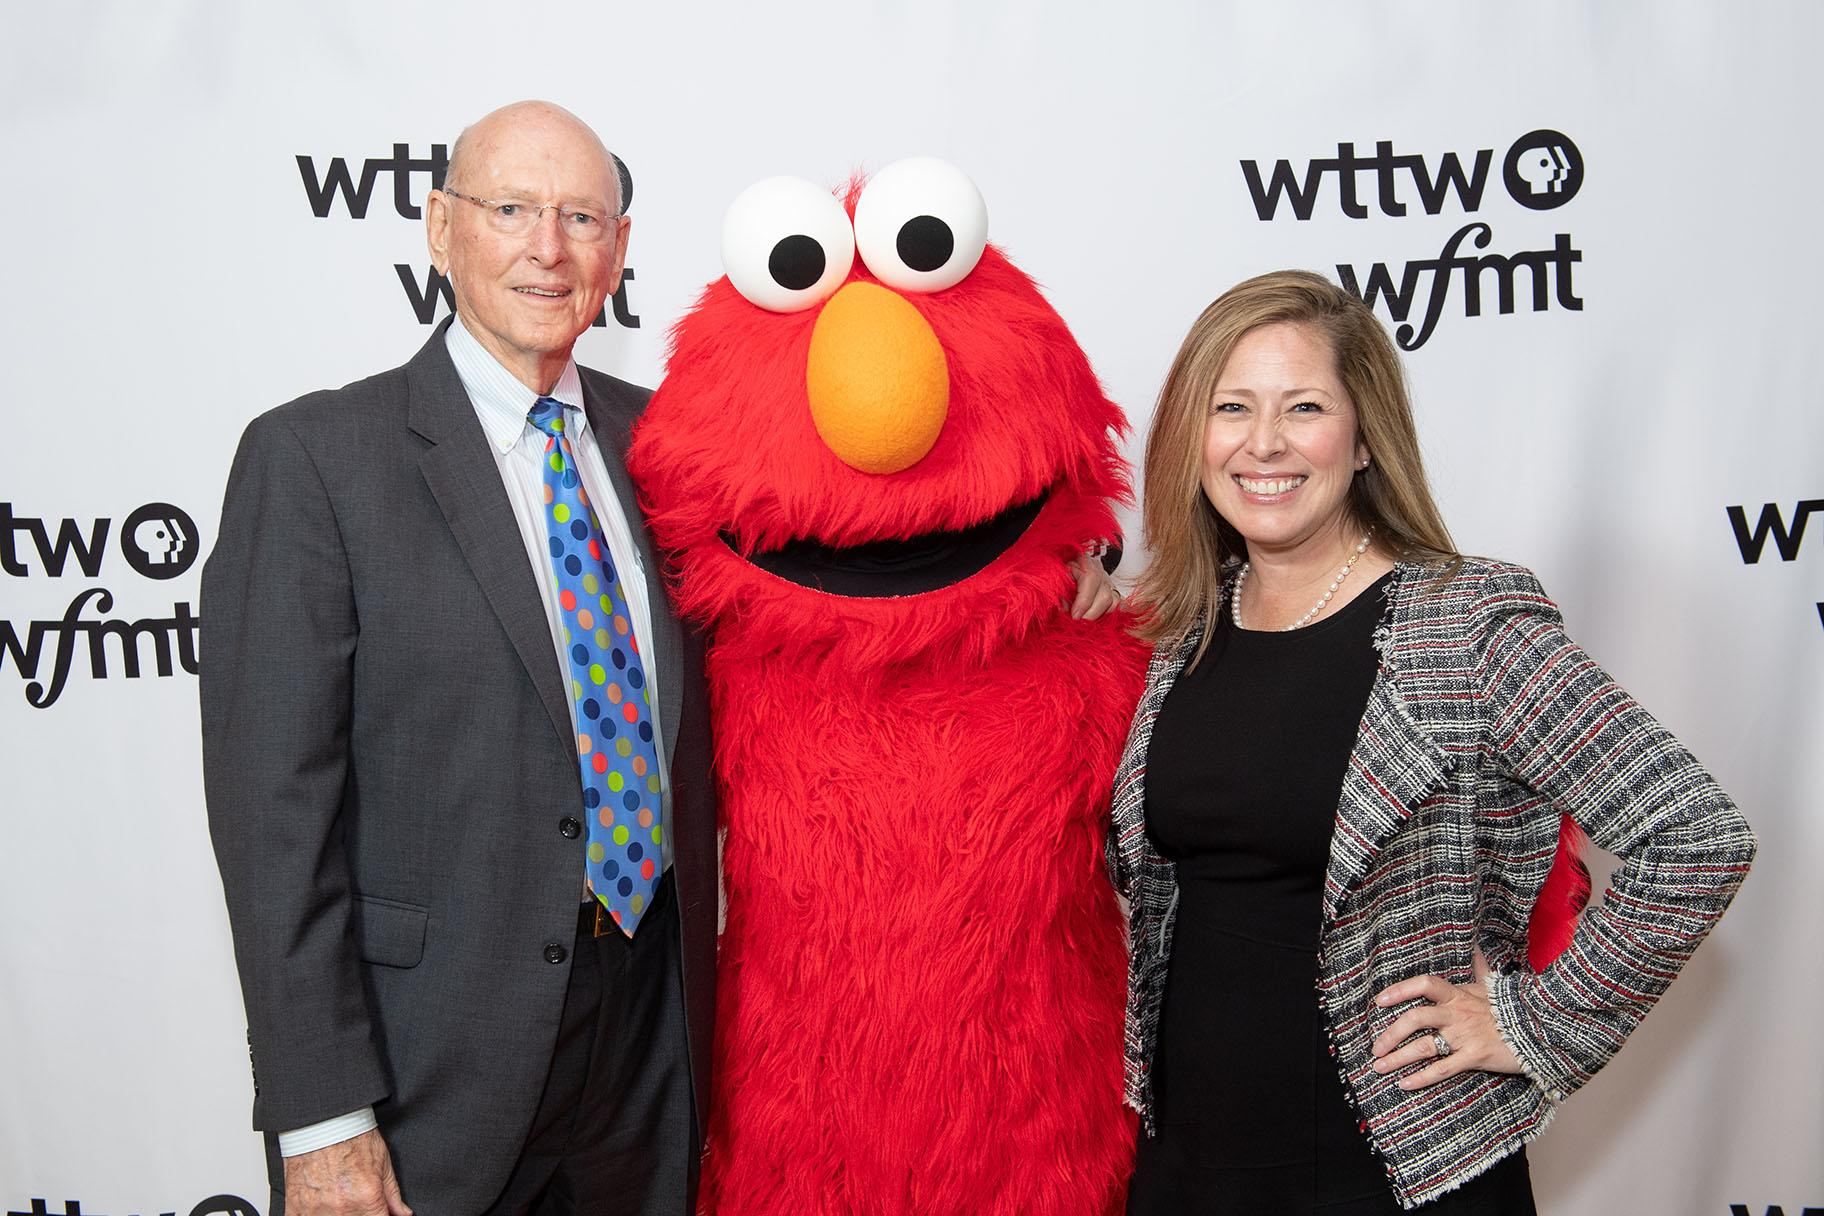 """Jim Mabie and Sandra Cordova Micek, president and CEO of WTTW and WFMT, pose with Elmo from """"Sesame Street."""" (WTTW)"""